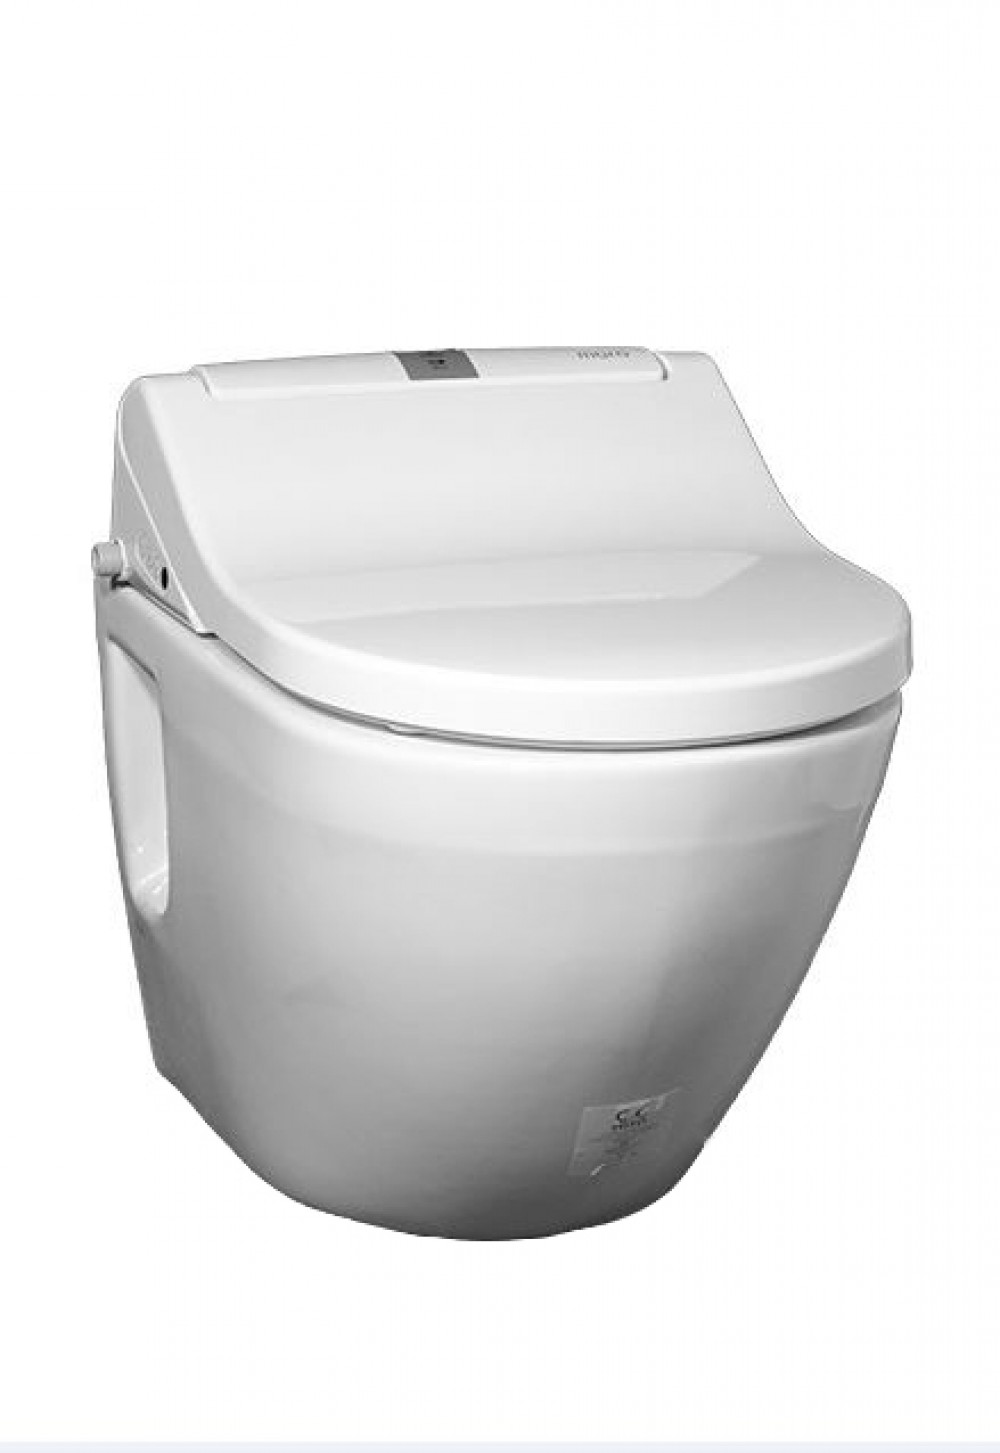 toto rimless toilet with washlet maro di600 ultimate premium